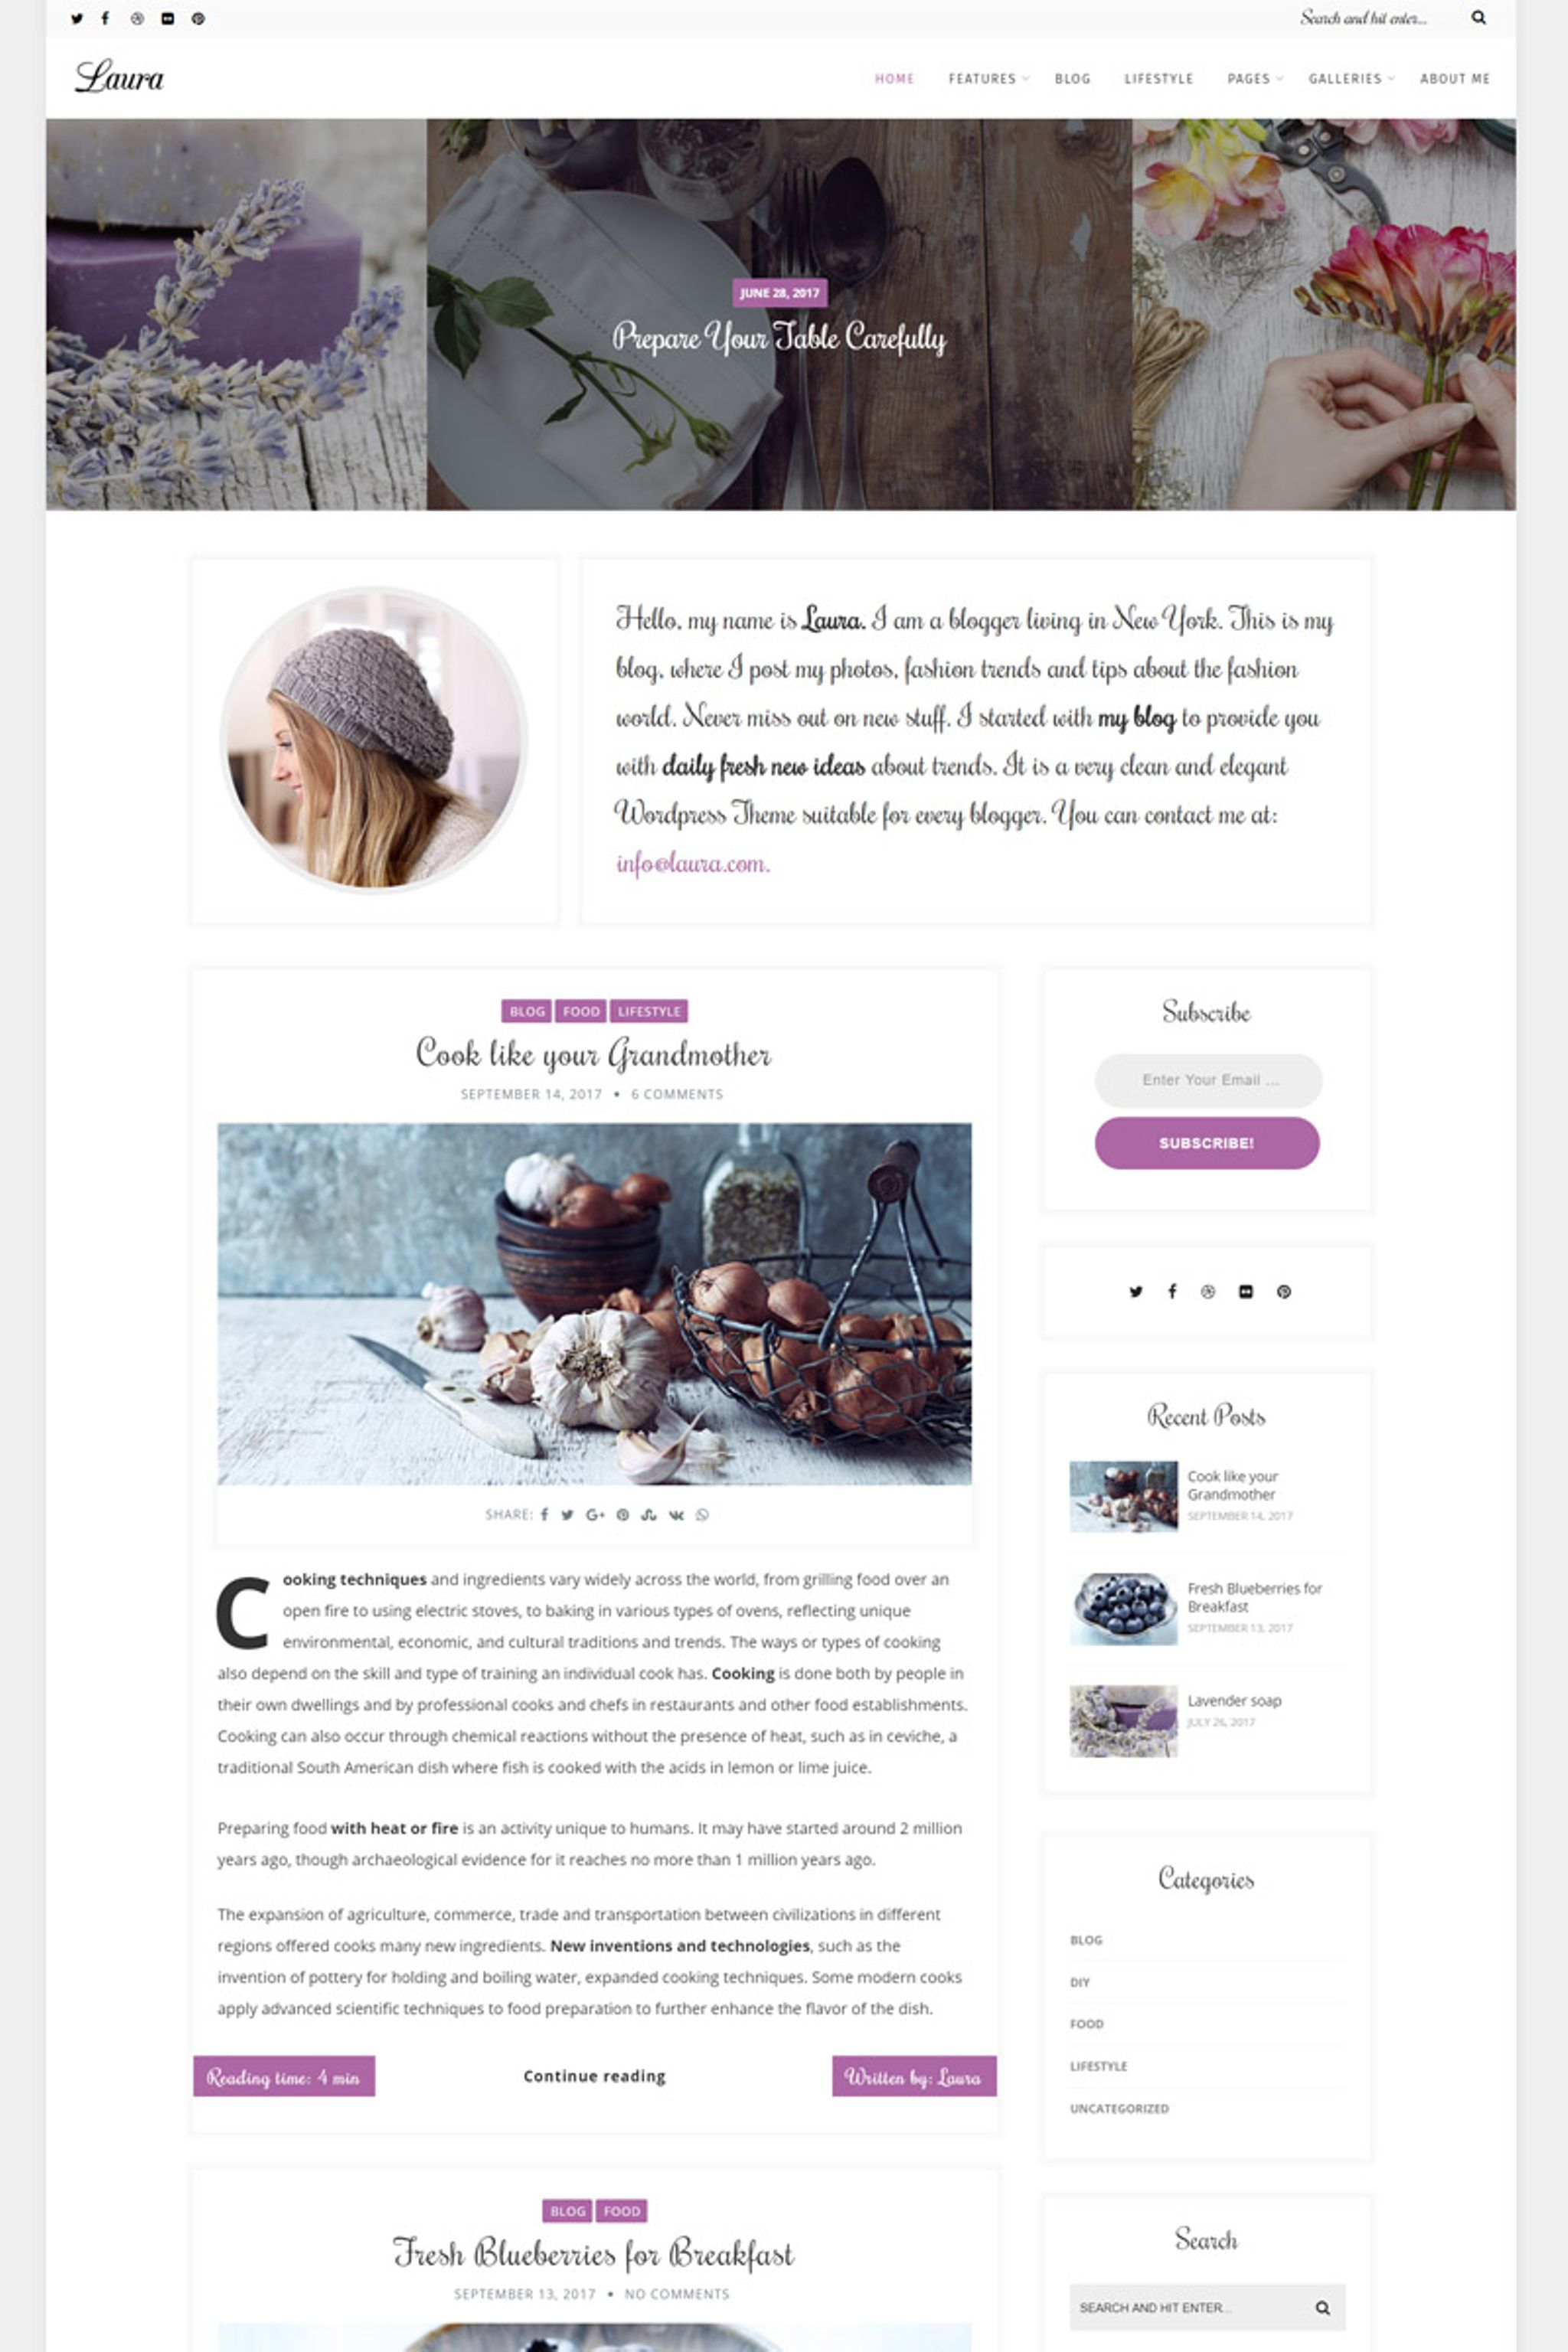 Website Design Template 67237 - theme bold clean creative fashion food hipster instagram lifestyle minimal personal photography travel wordpress essential grid masonry sidebar fullwidth